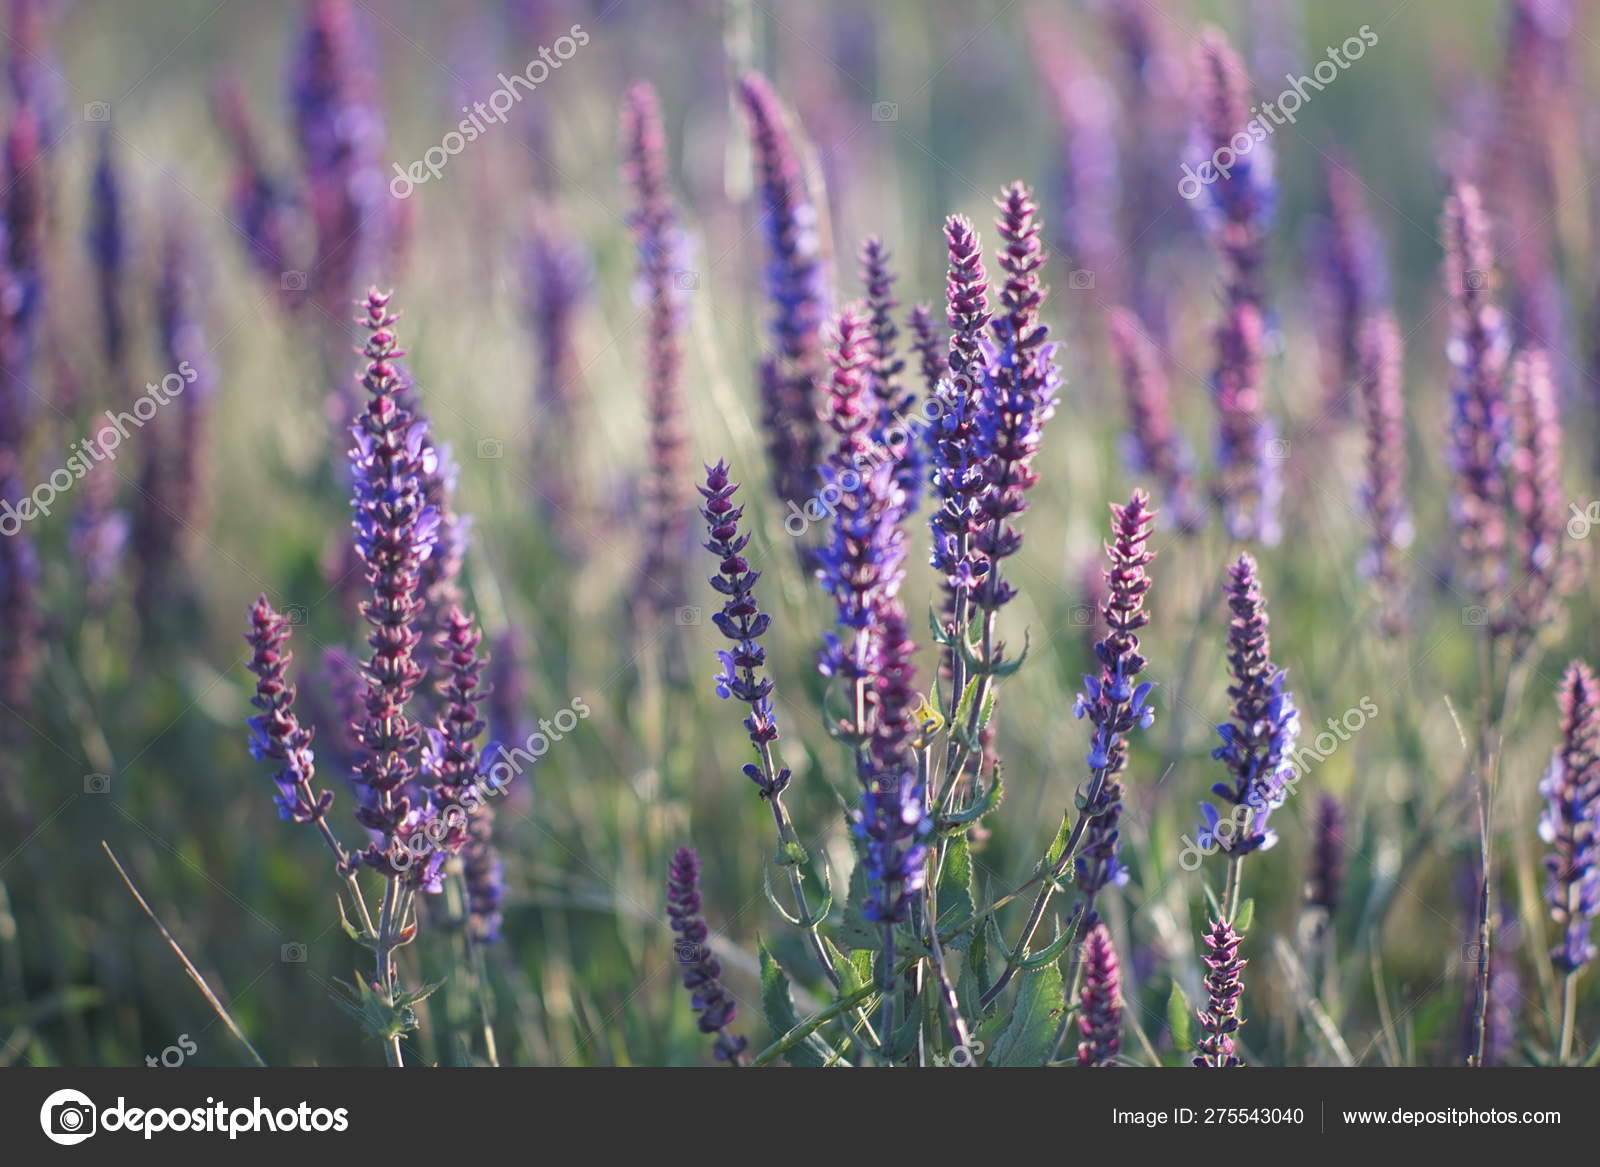 Lavender At Sunset Field Of Purple Flowers Stock Photo C Sonymoon 275543040